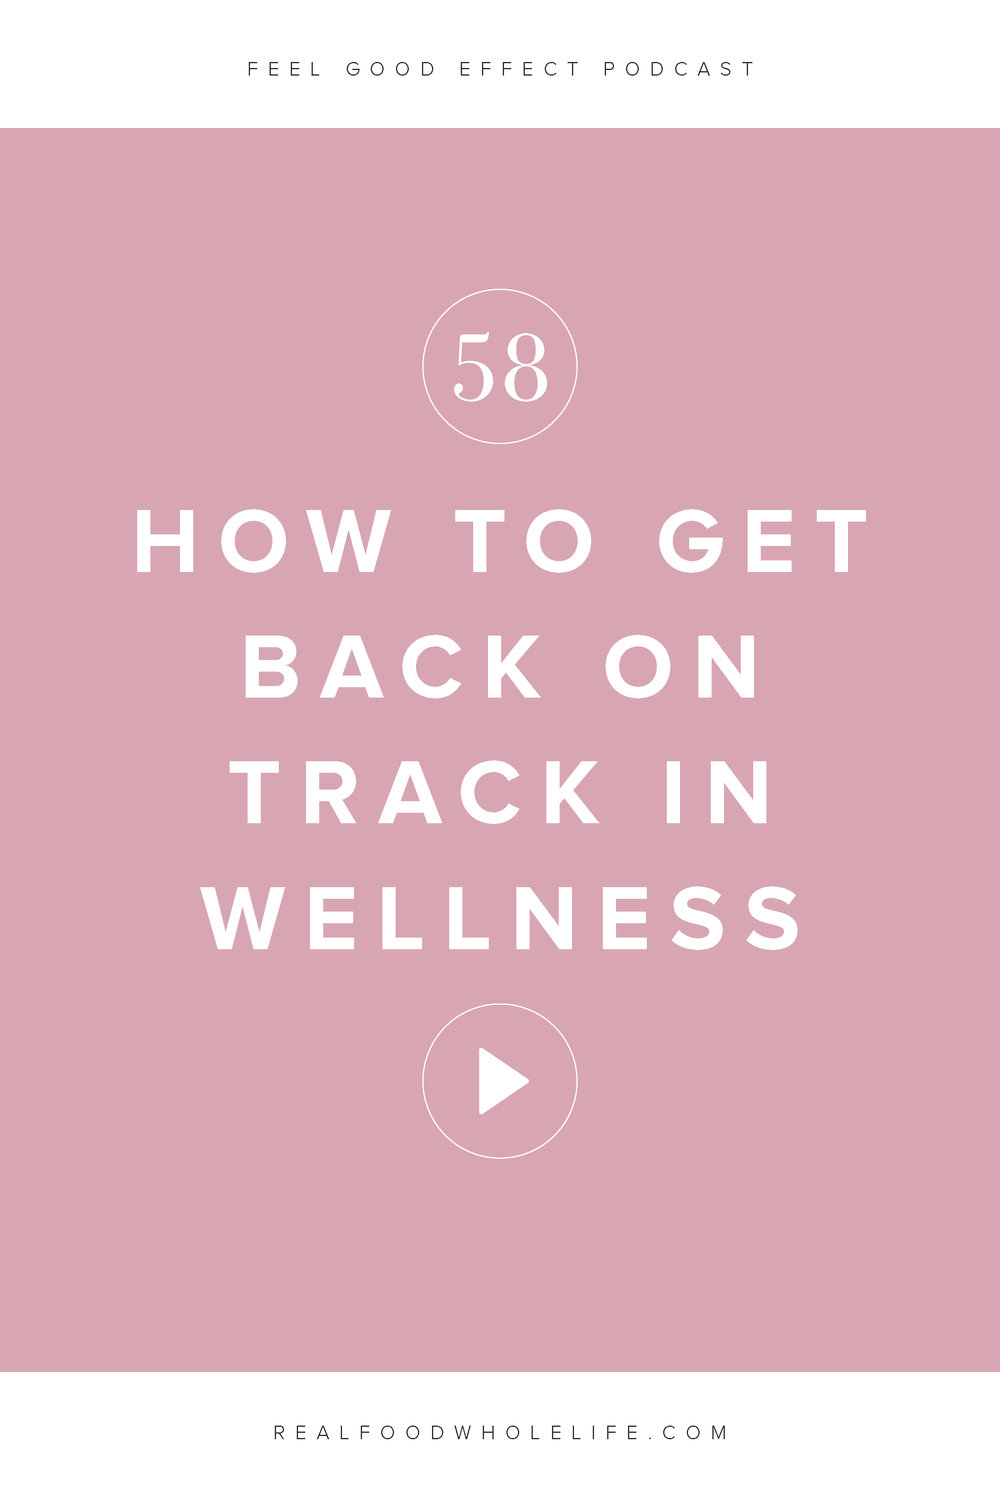 The Feel Good Effect Podcast: how to get back on track after you've let wellness slip. We're breaking down the 5 steps to getting back on track when you've gotten away from wellness. #feelgoodeffectpodcast #podcast #wellness #healthyandwellness #wellnesspodcast